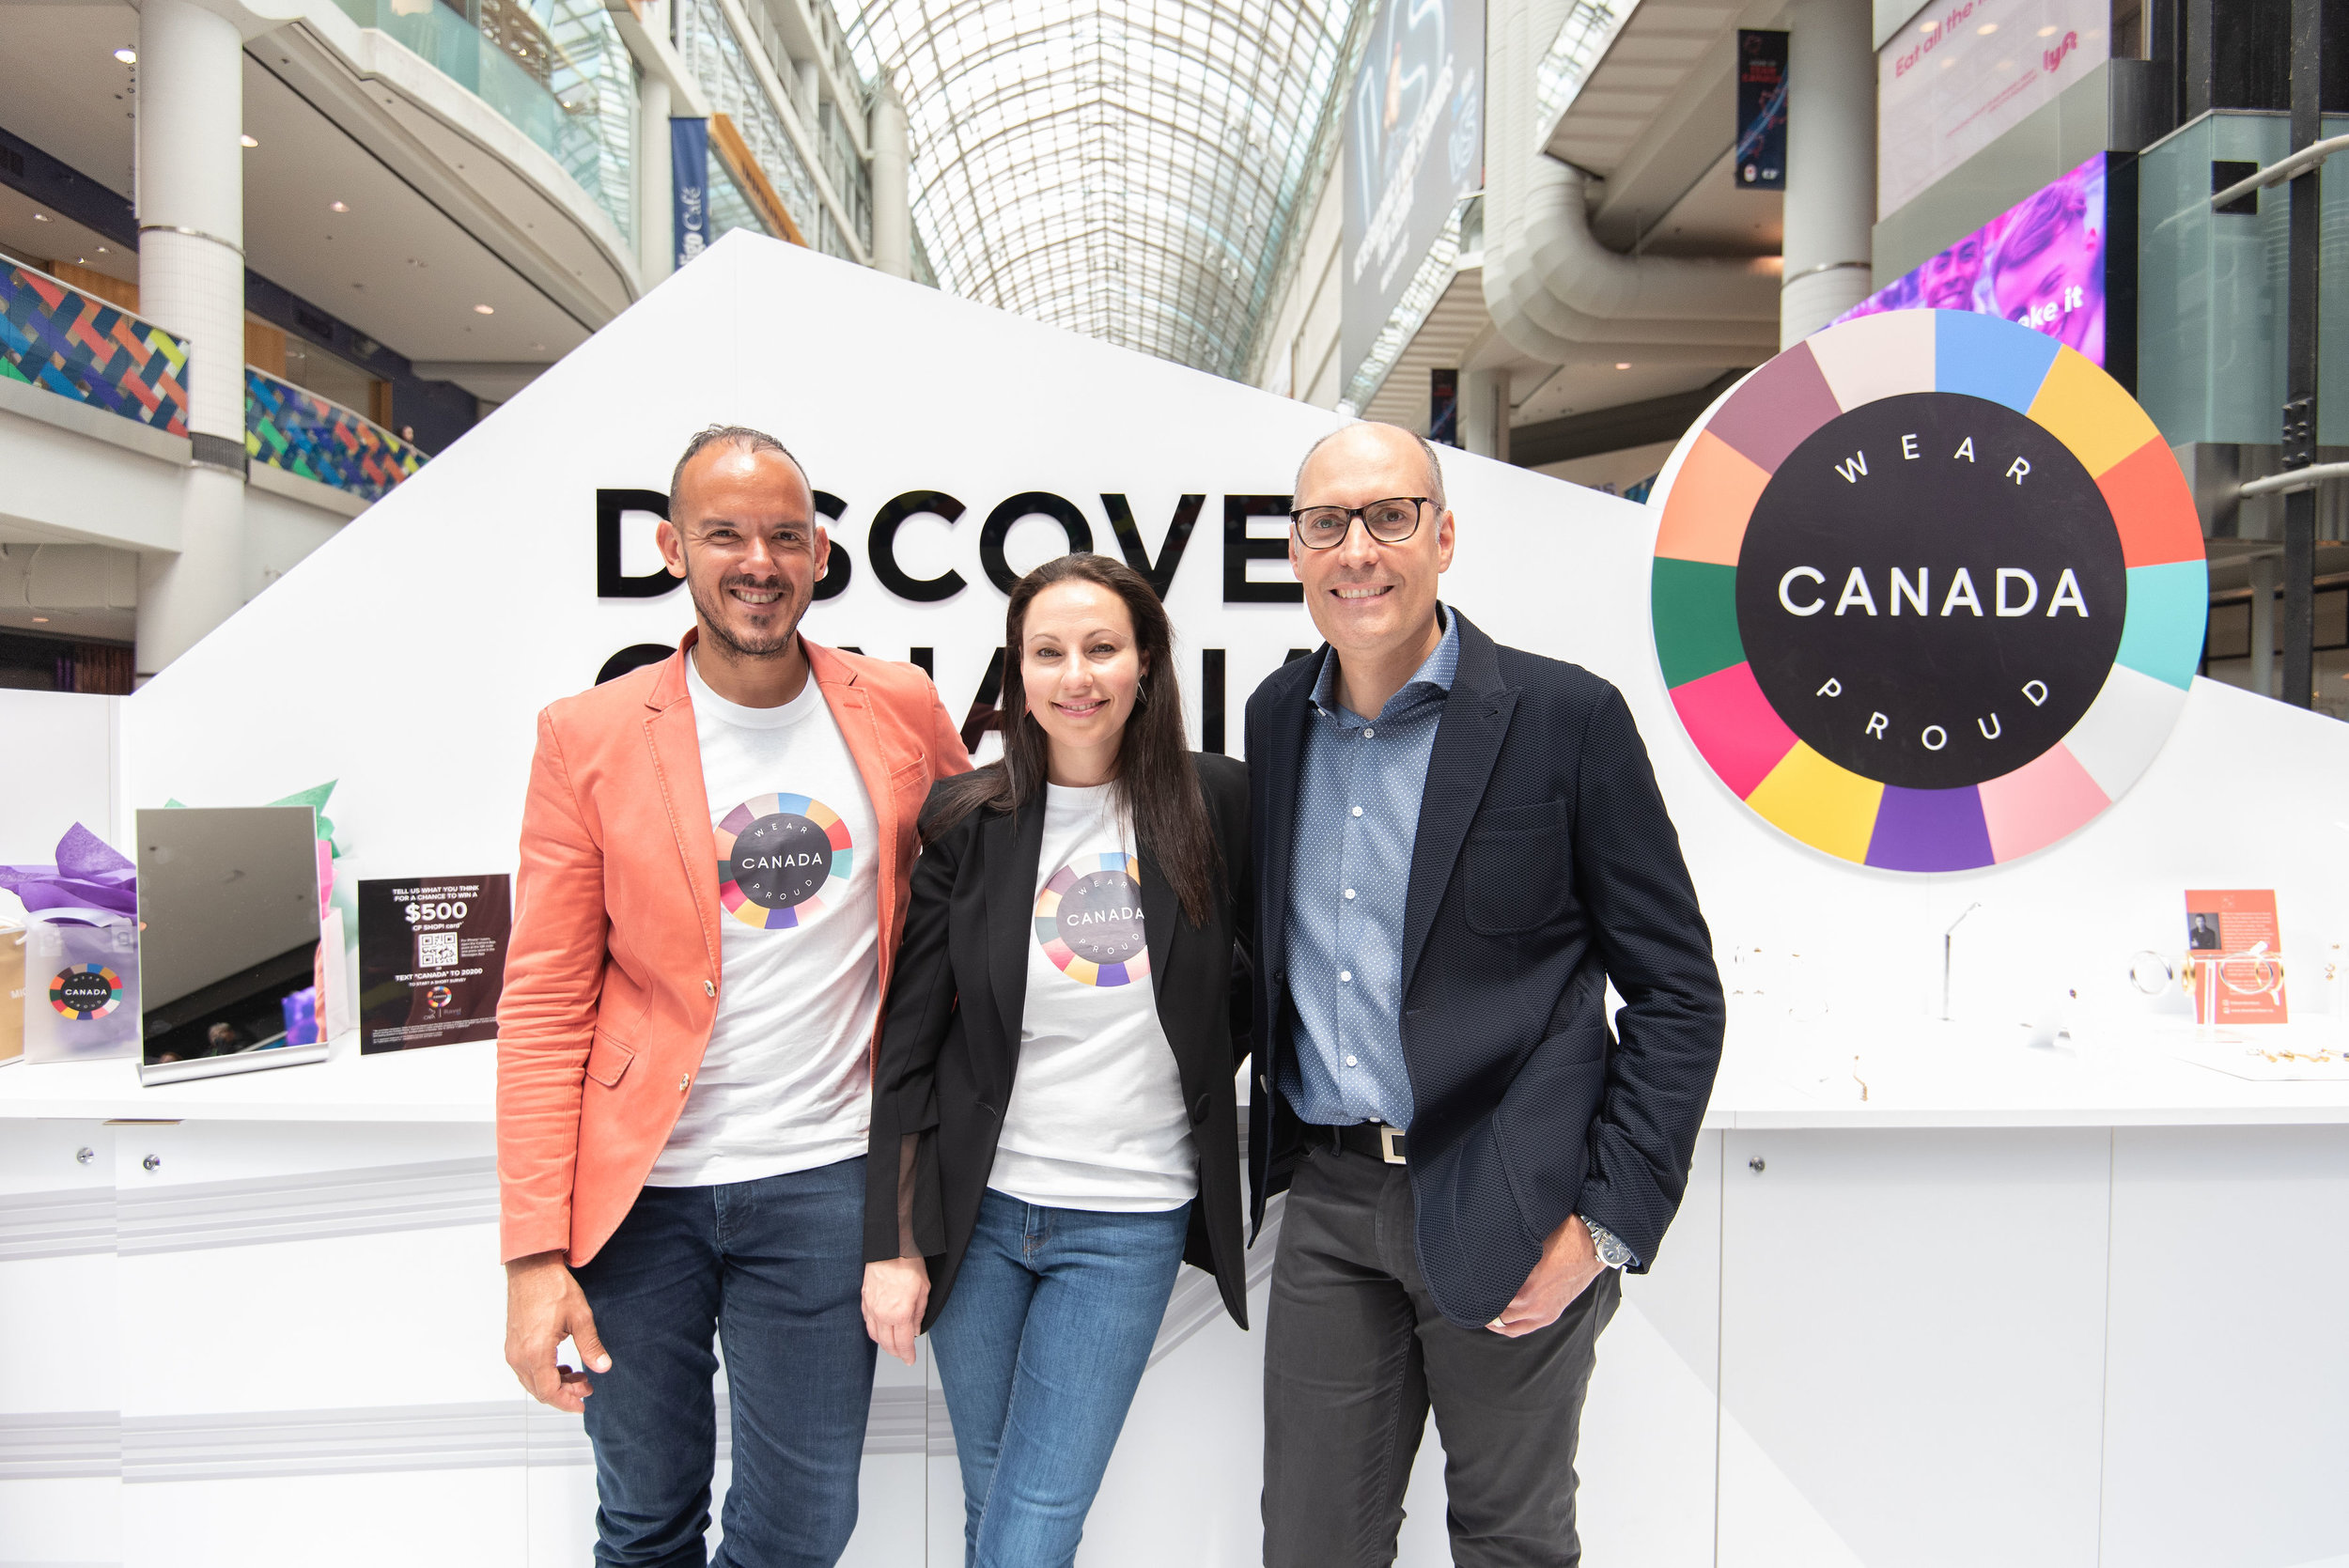 From L-R: Paulo Leone, Co-Founder, Wear Canada Proud, Vicky Milner, President of CAFA, Jose Ribau, Executive Vice President of Digital & Innovation, Cadillac Fairview. photo: cadillac fairview